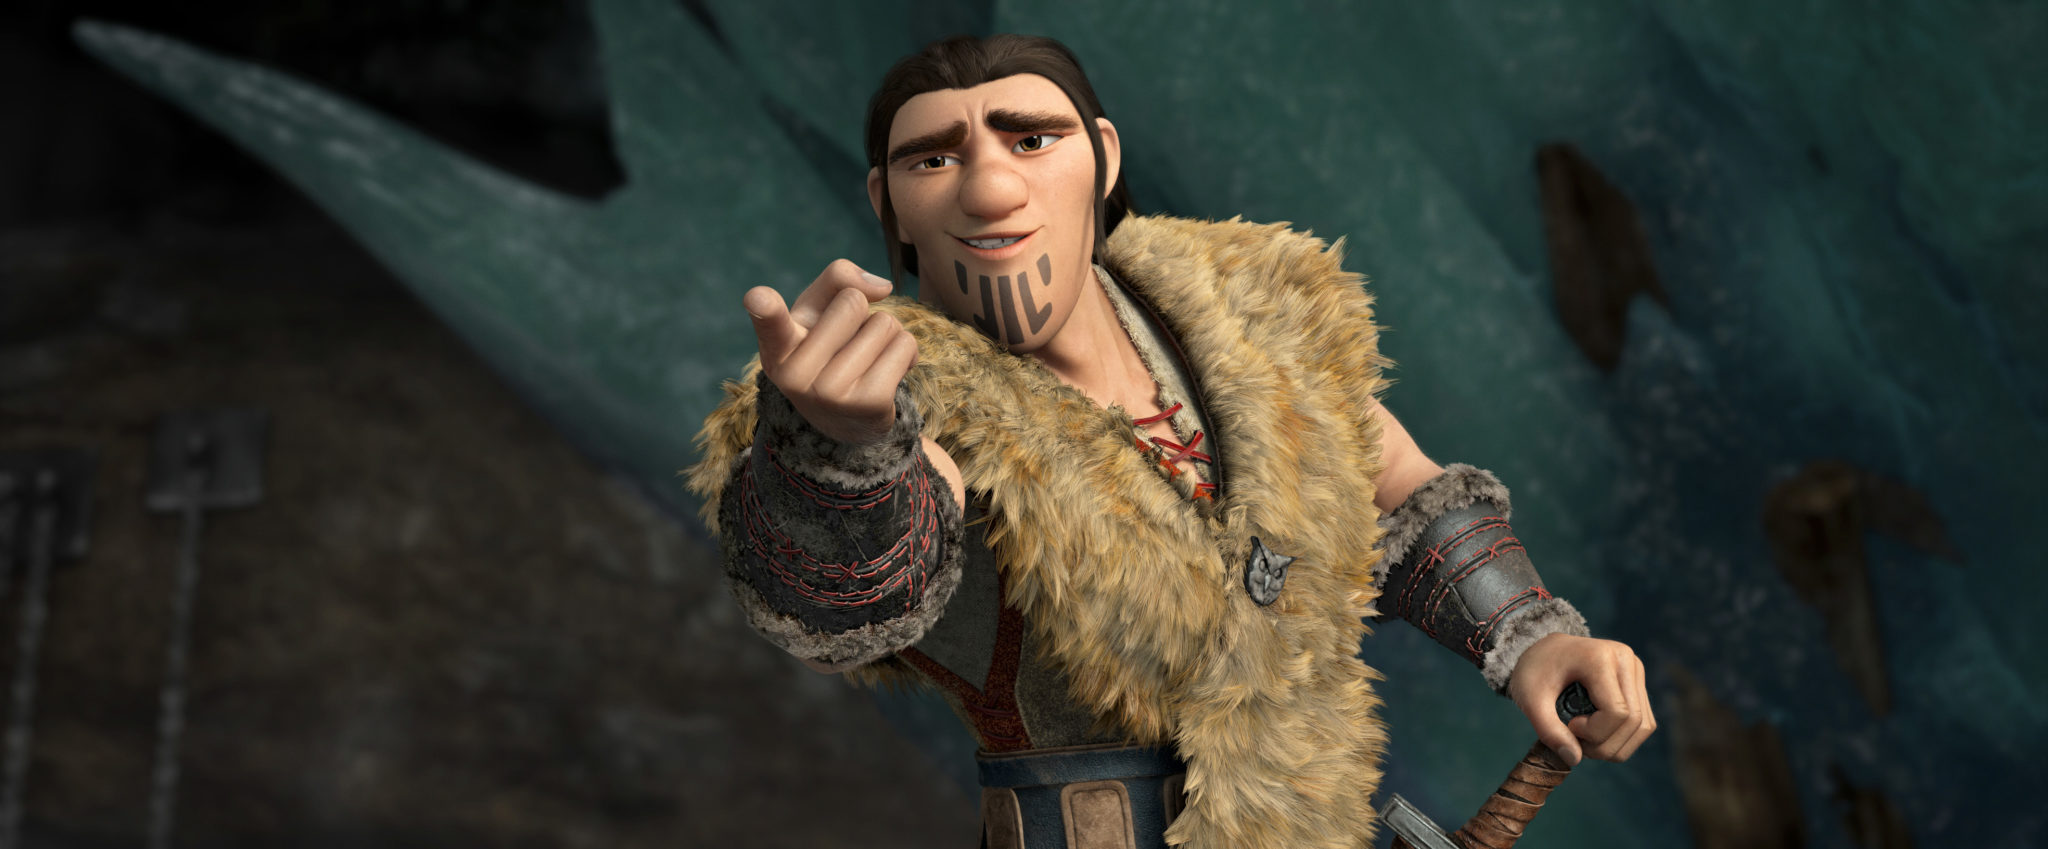 Final How To Train Your Dragon 2 Trailer Releasing This Friday